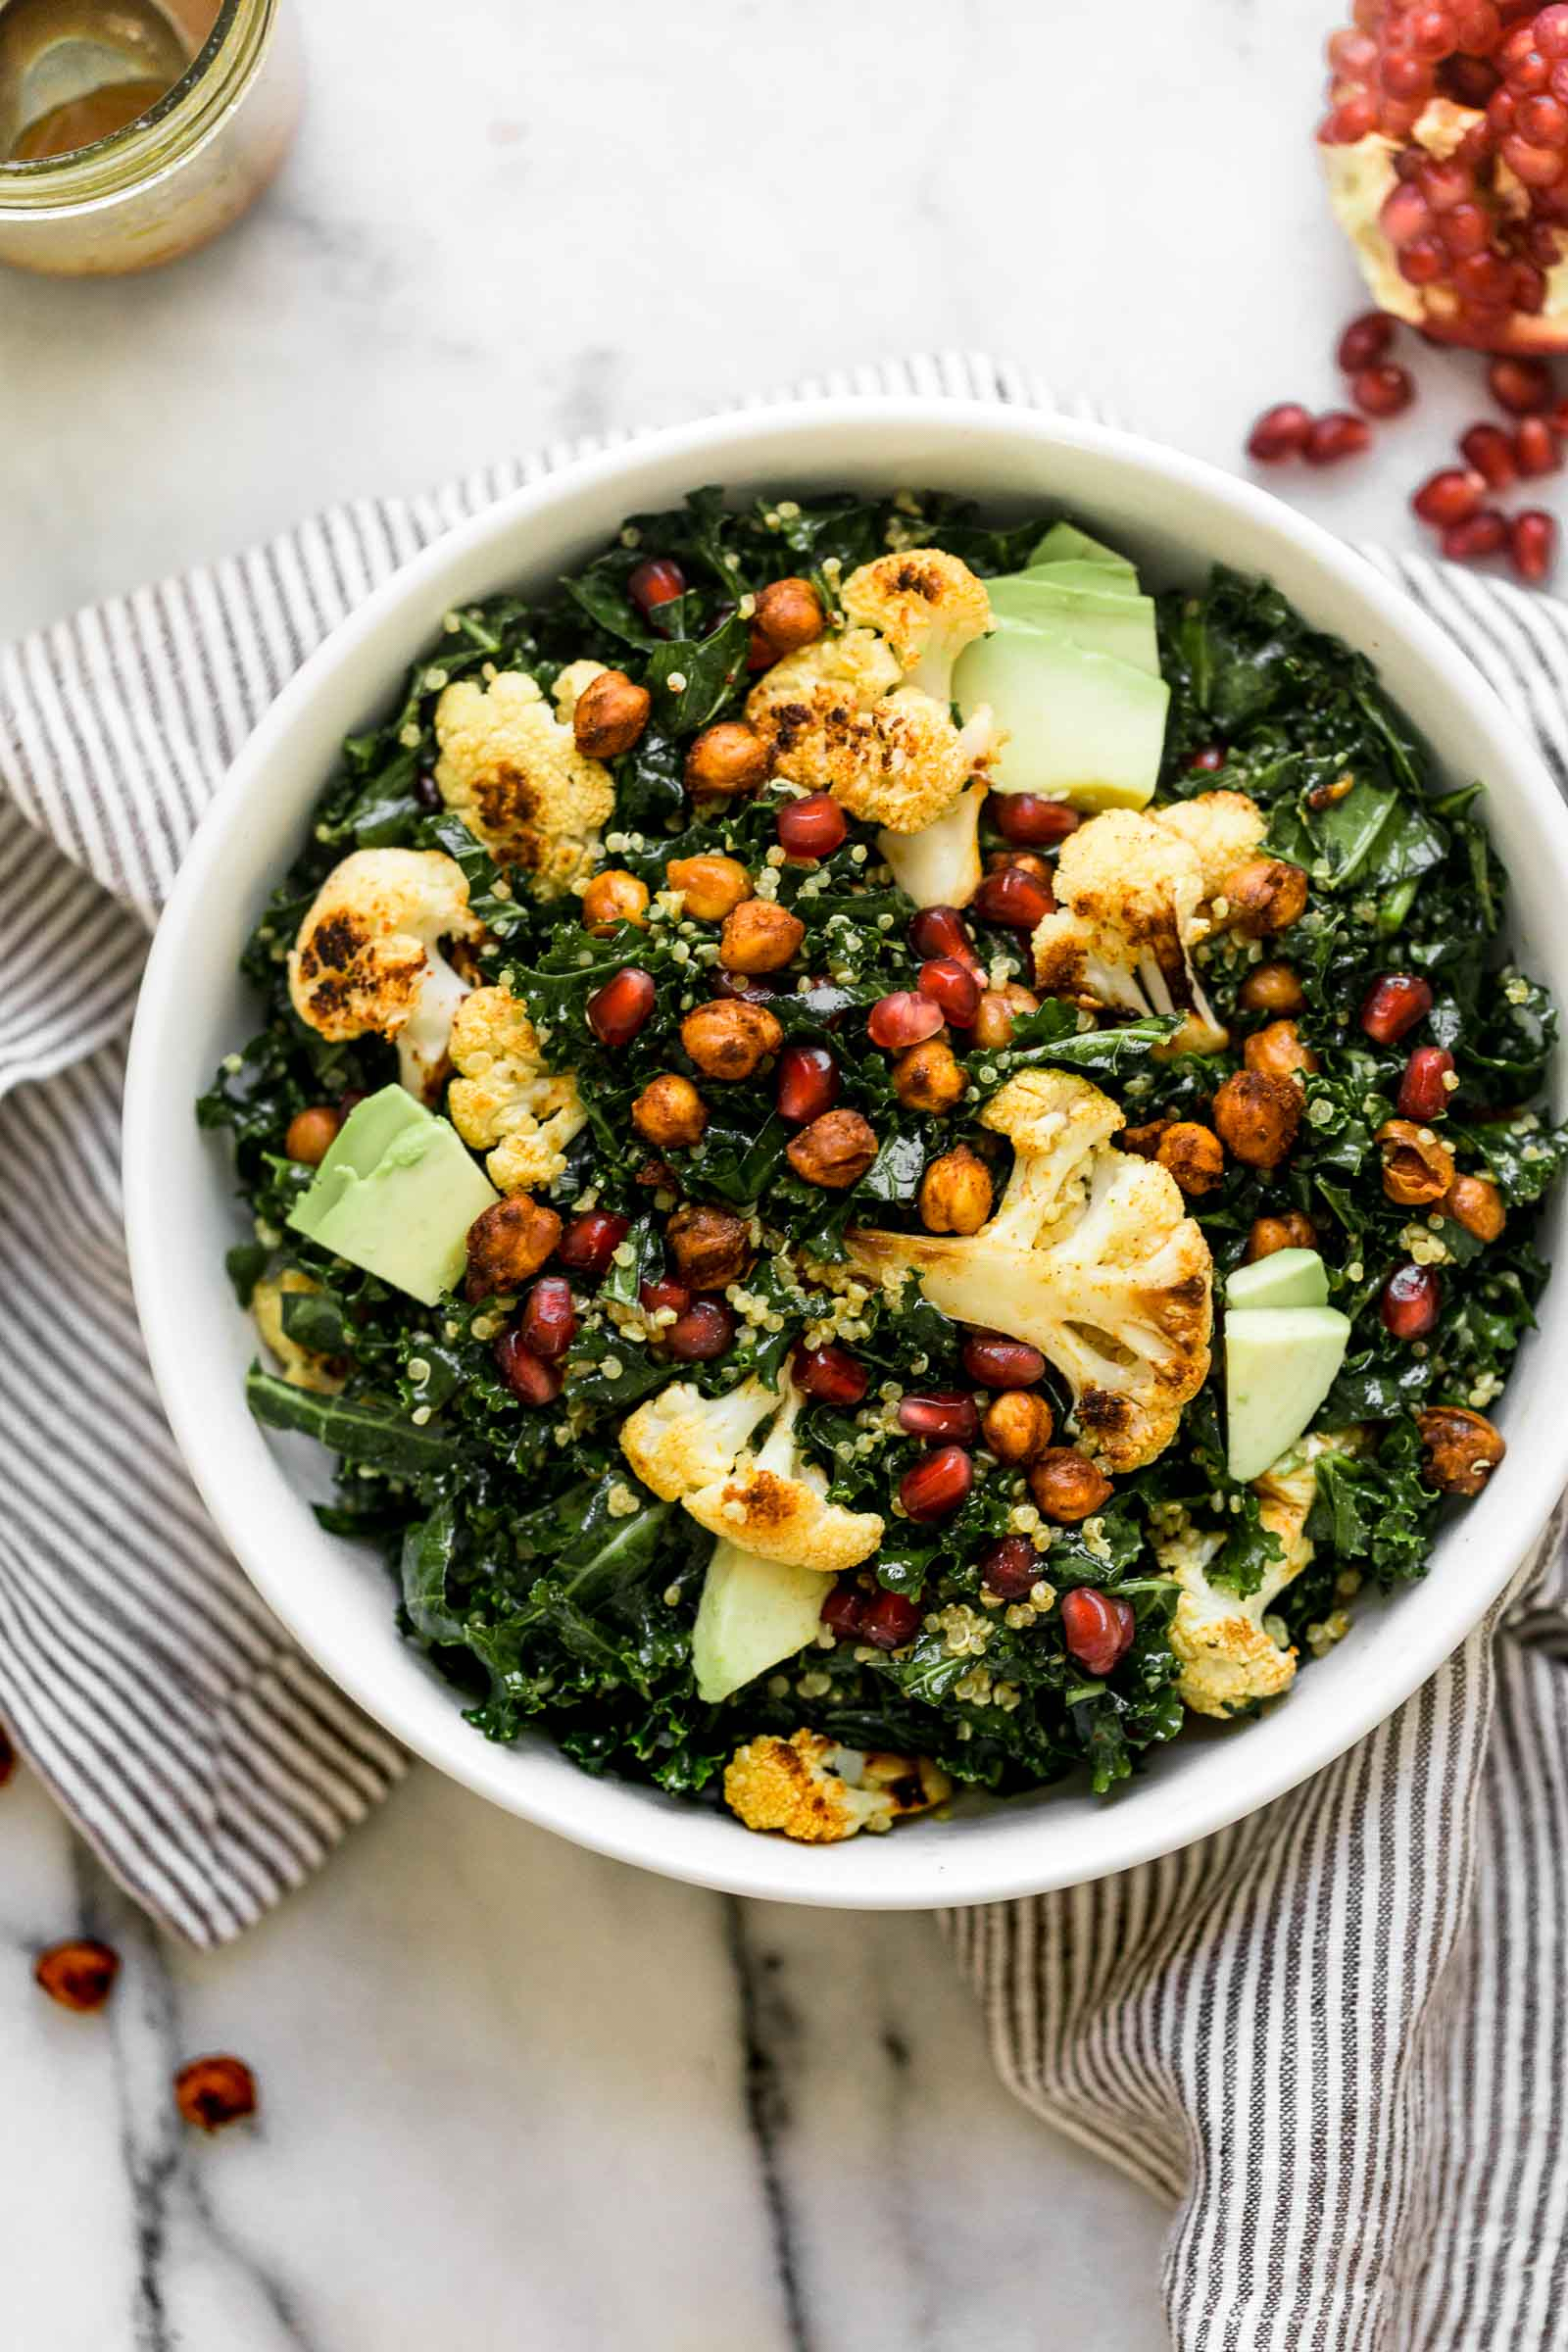 a nourishing & filling winter salad, this winter glow bowl is loaded with the best feel-good winter ingredients: roasted cauliflower, pomegranate arils, avocado, & kale, which all get tossed together in a homemade curry vinaigrette with spiced roasted chickpeas. winter salads have never looked this good! #salad #mealprep #saladrecipe #kalesalad #curryvinaigrette #roastedcauliflower #roastedchickpeas #playswellwithbutter